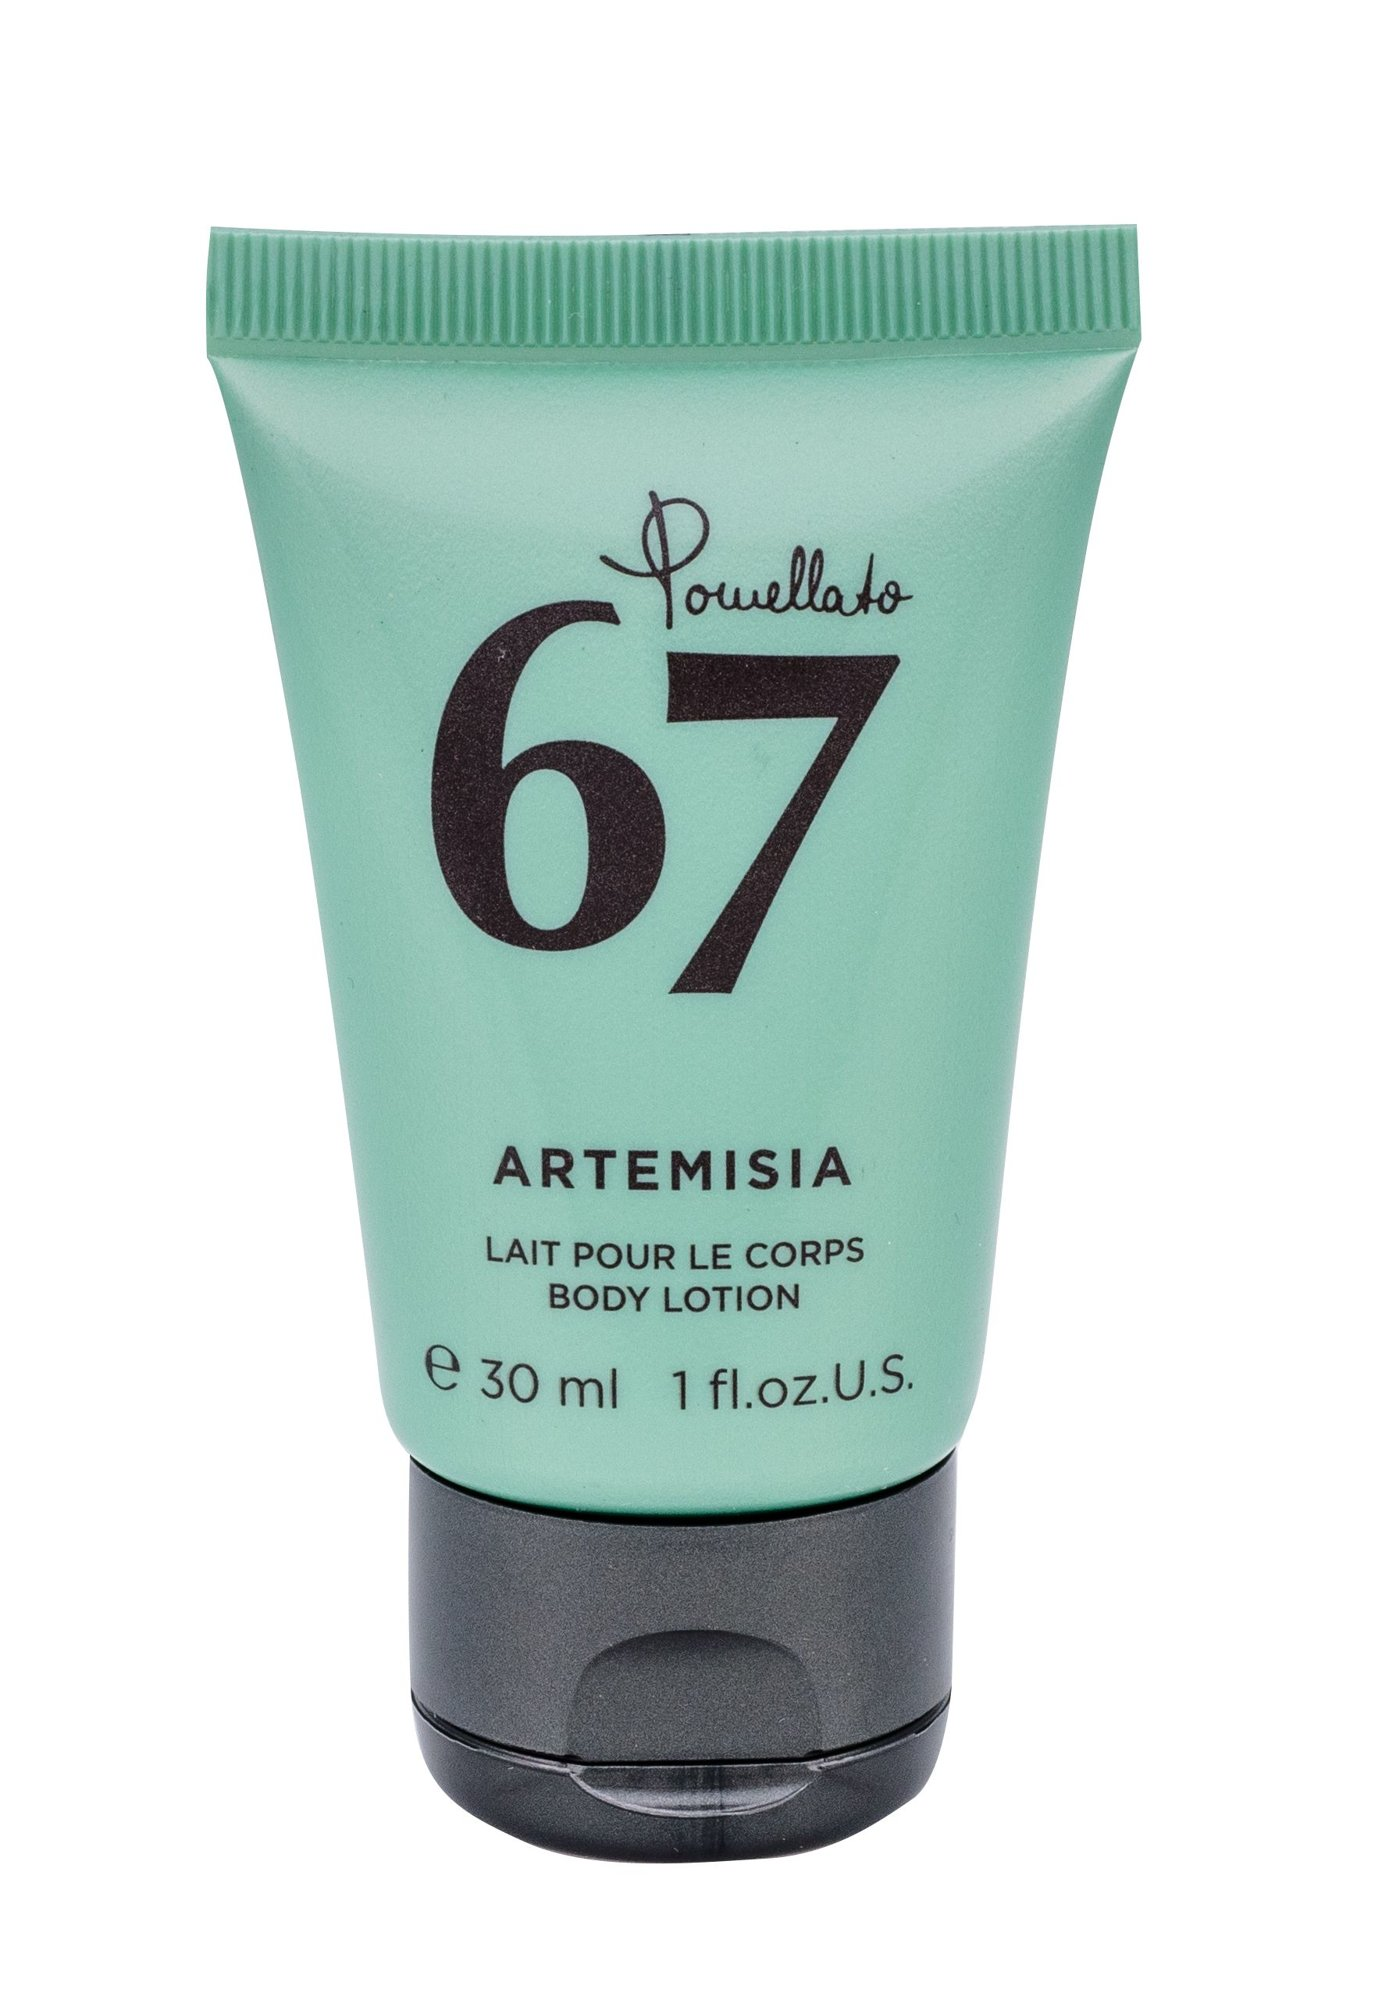 Pomellato 67 Artemisia Body lotion 30ml